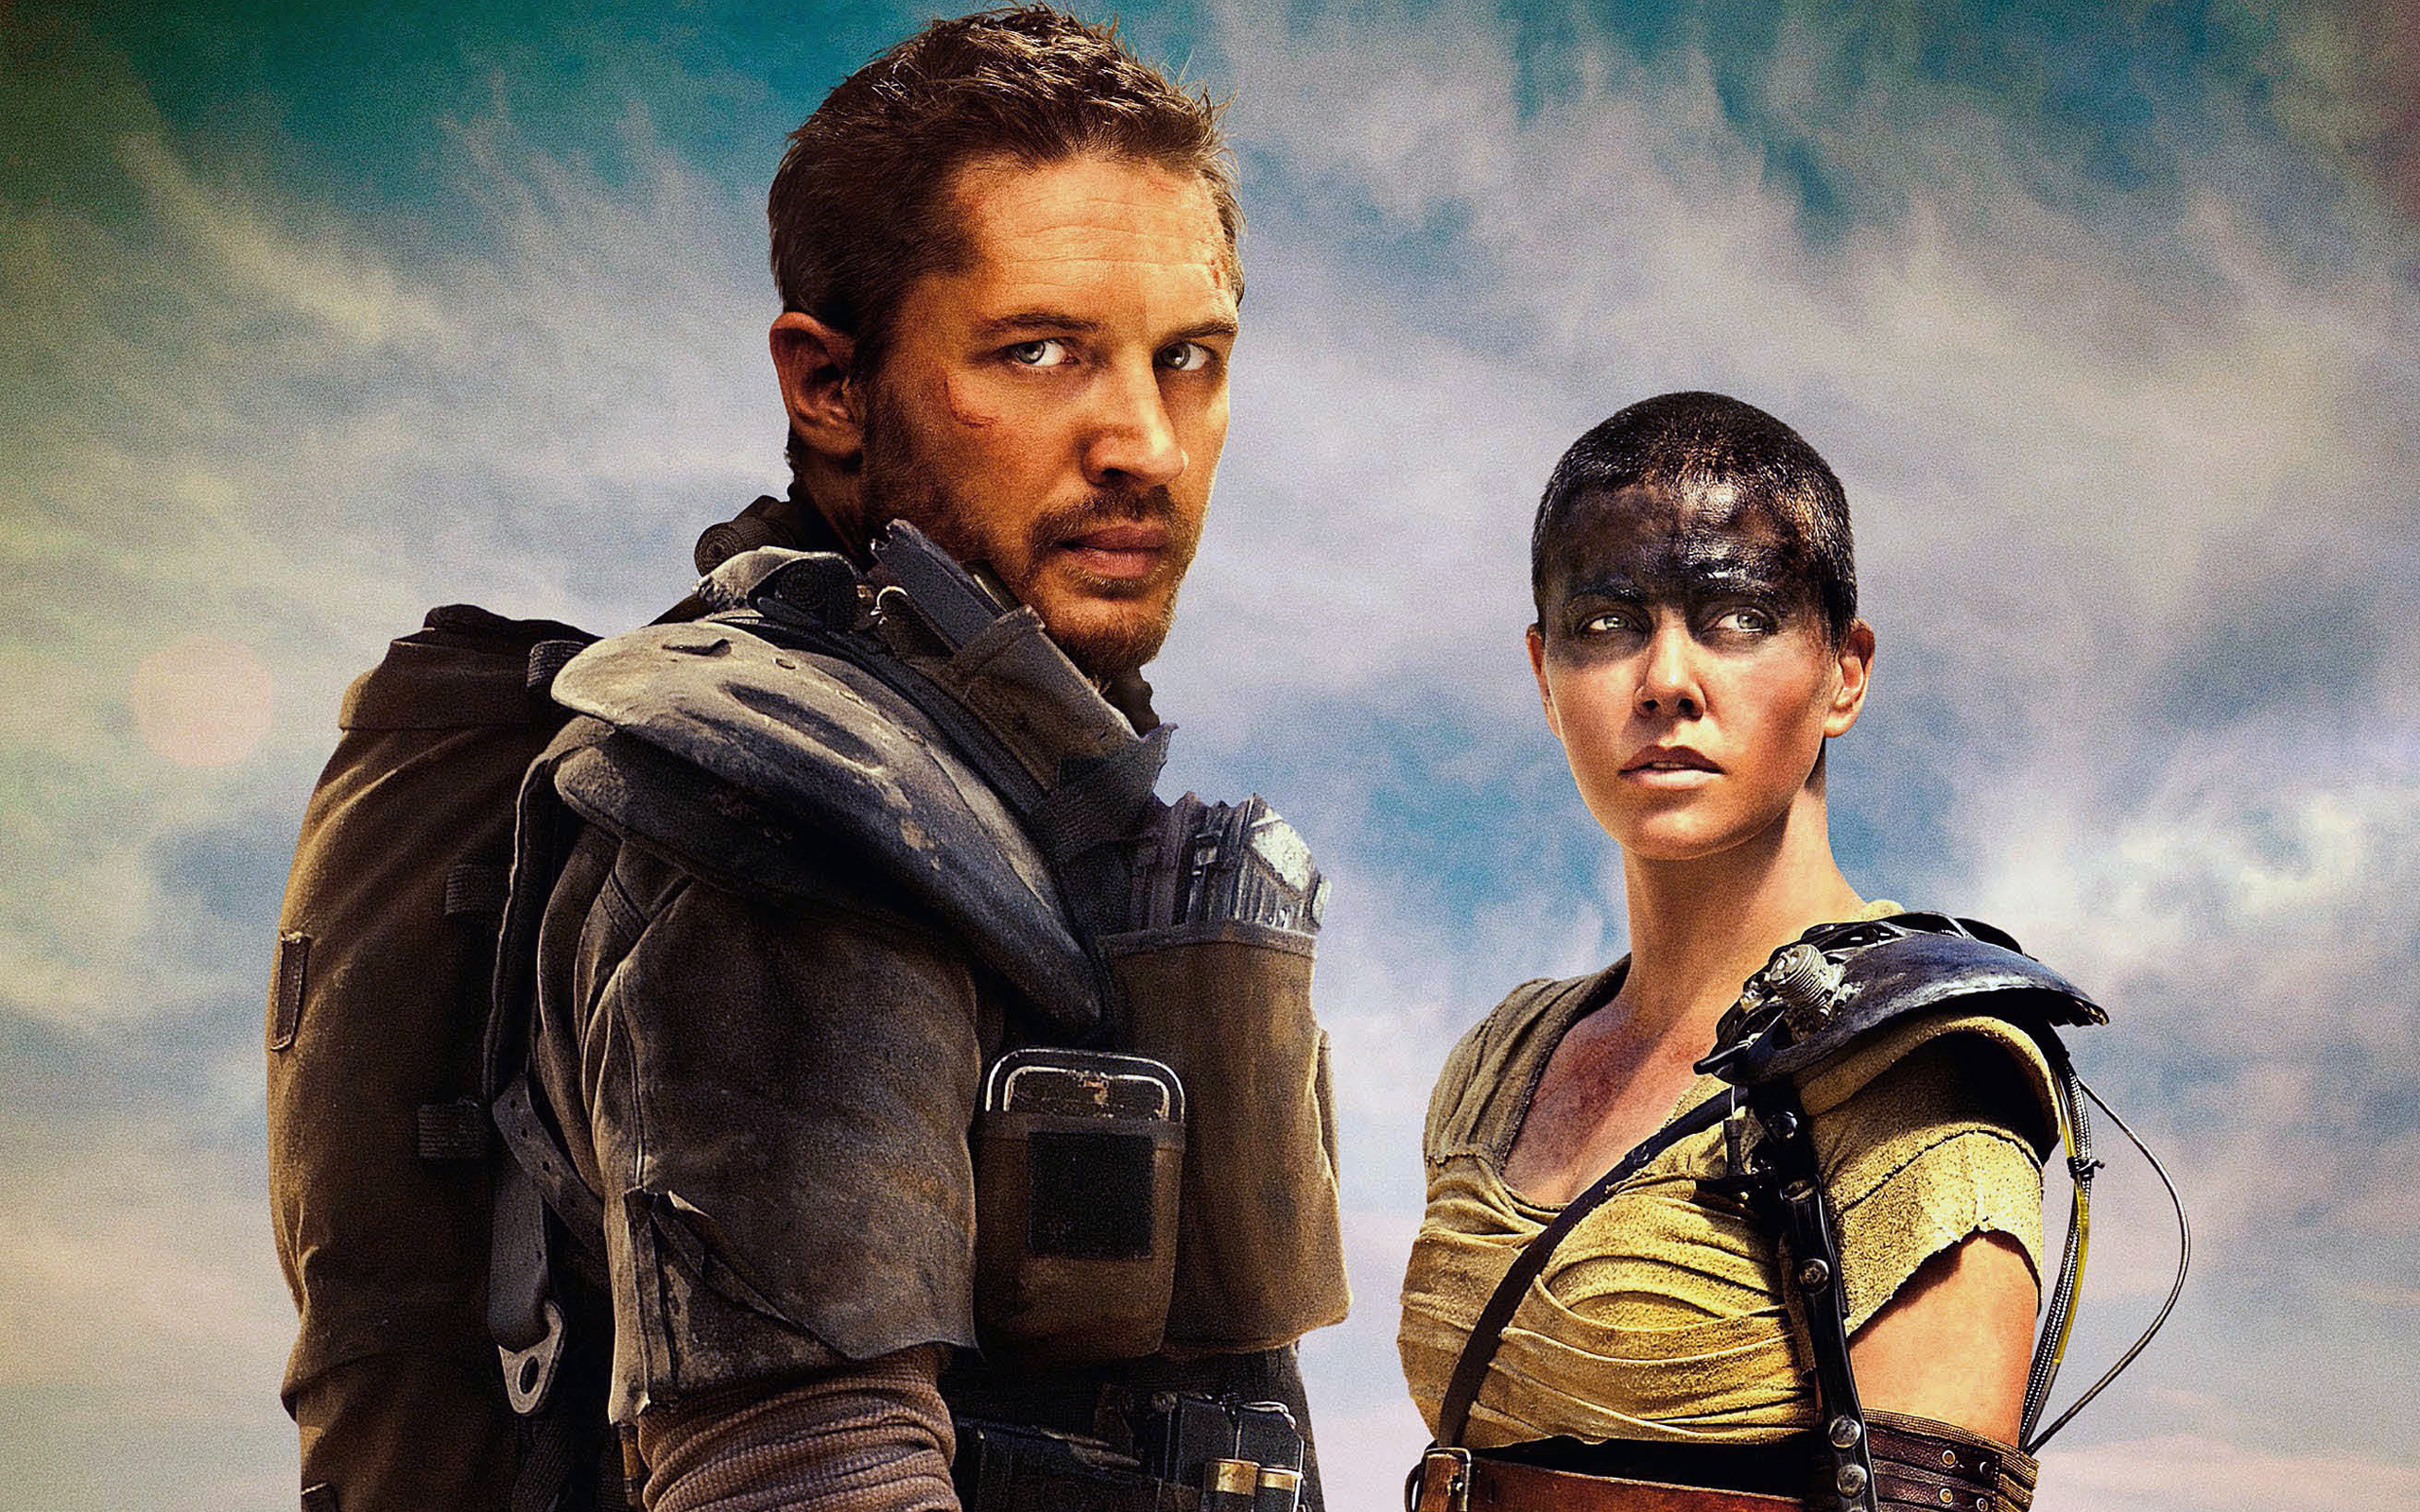 Noc Reviews Mad Max Fury Road The Nerds Of Color